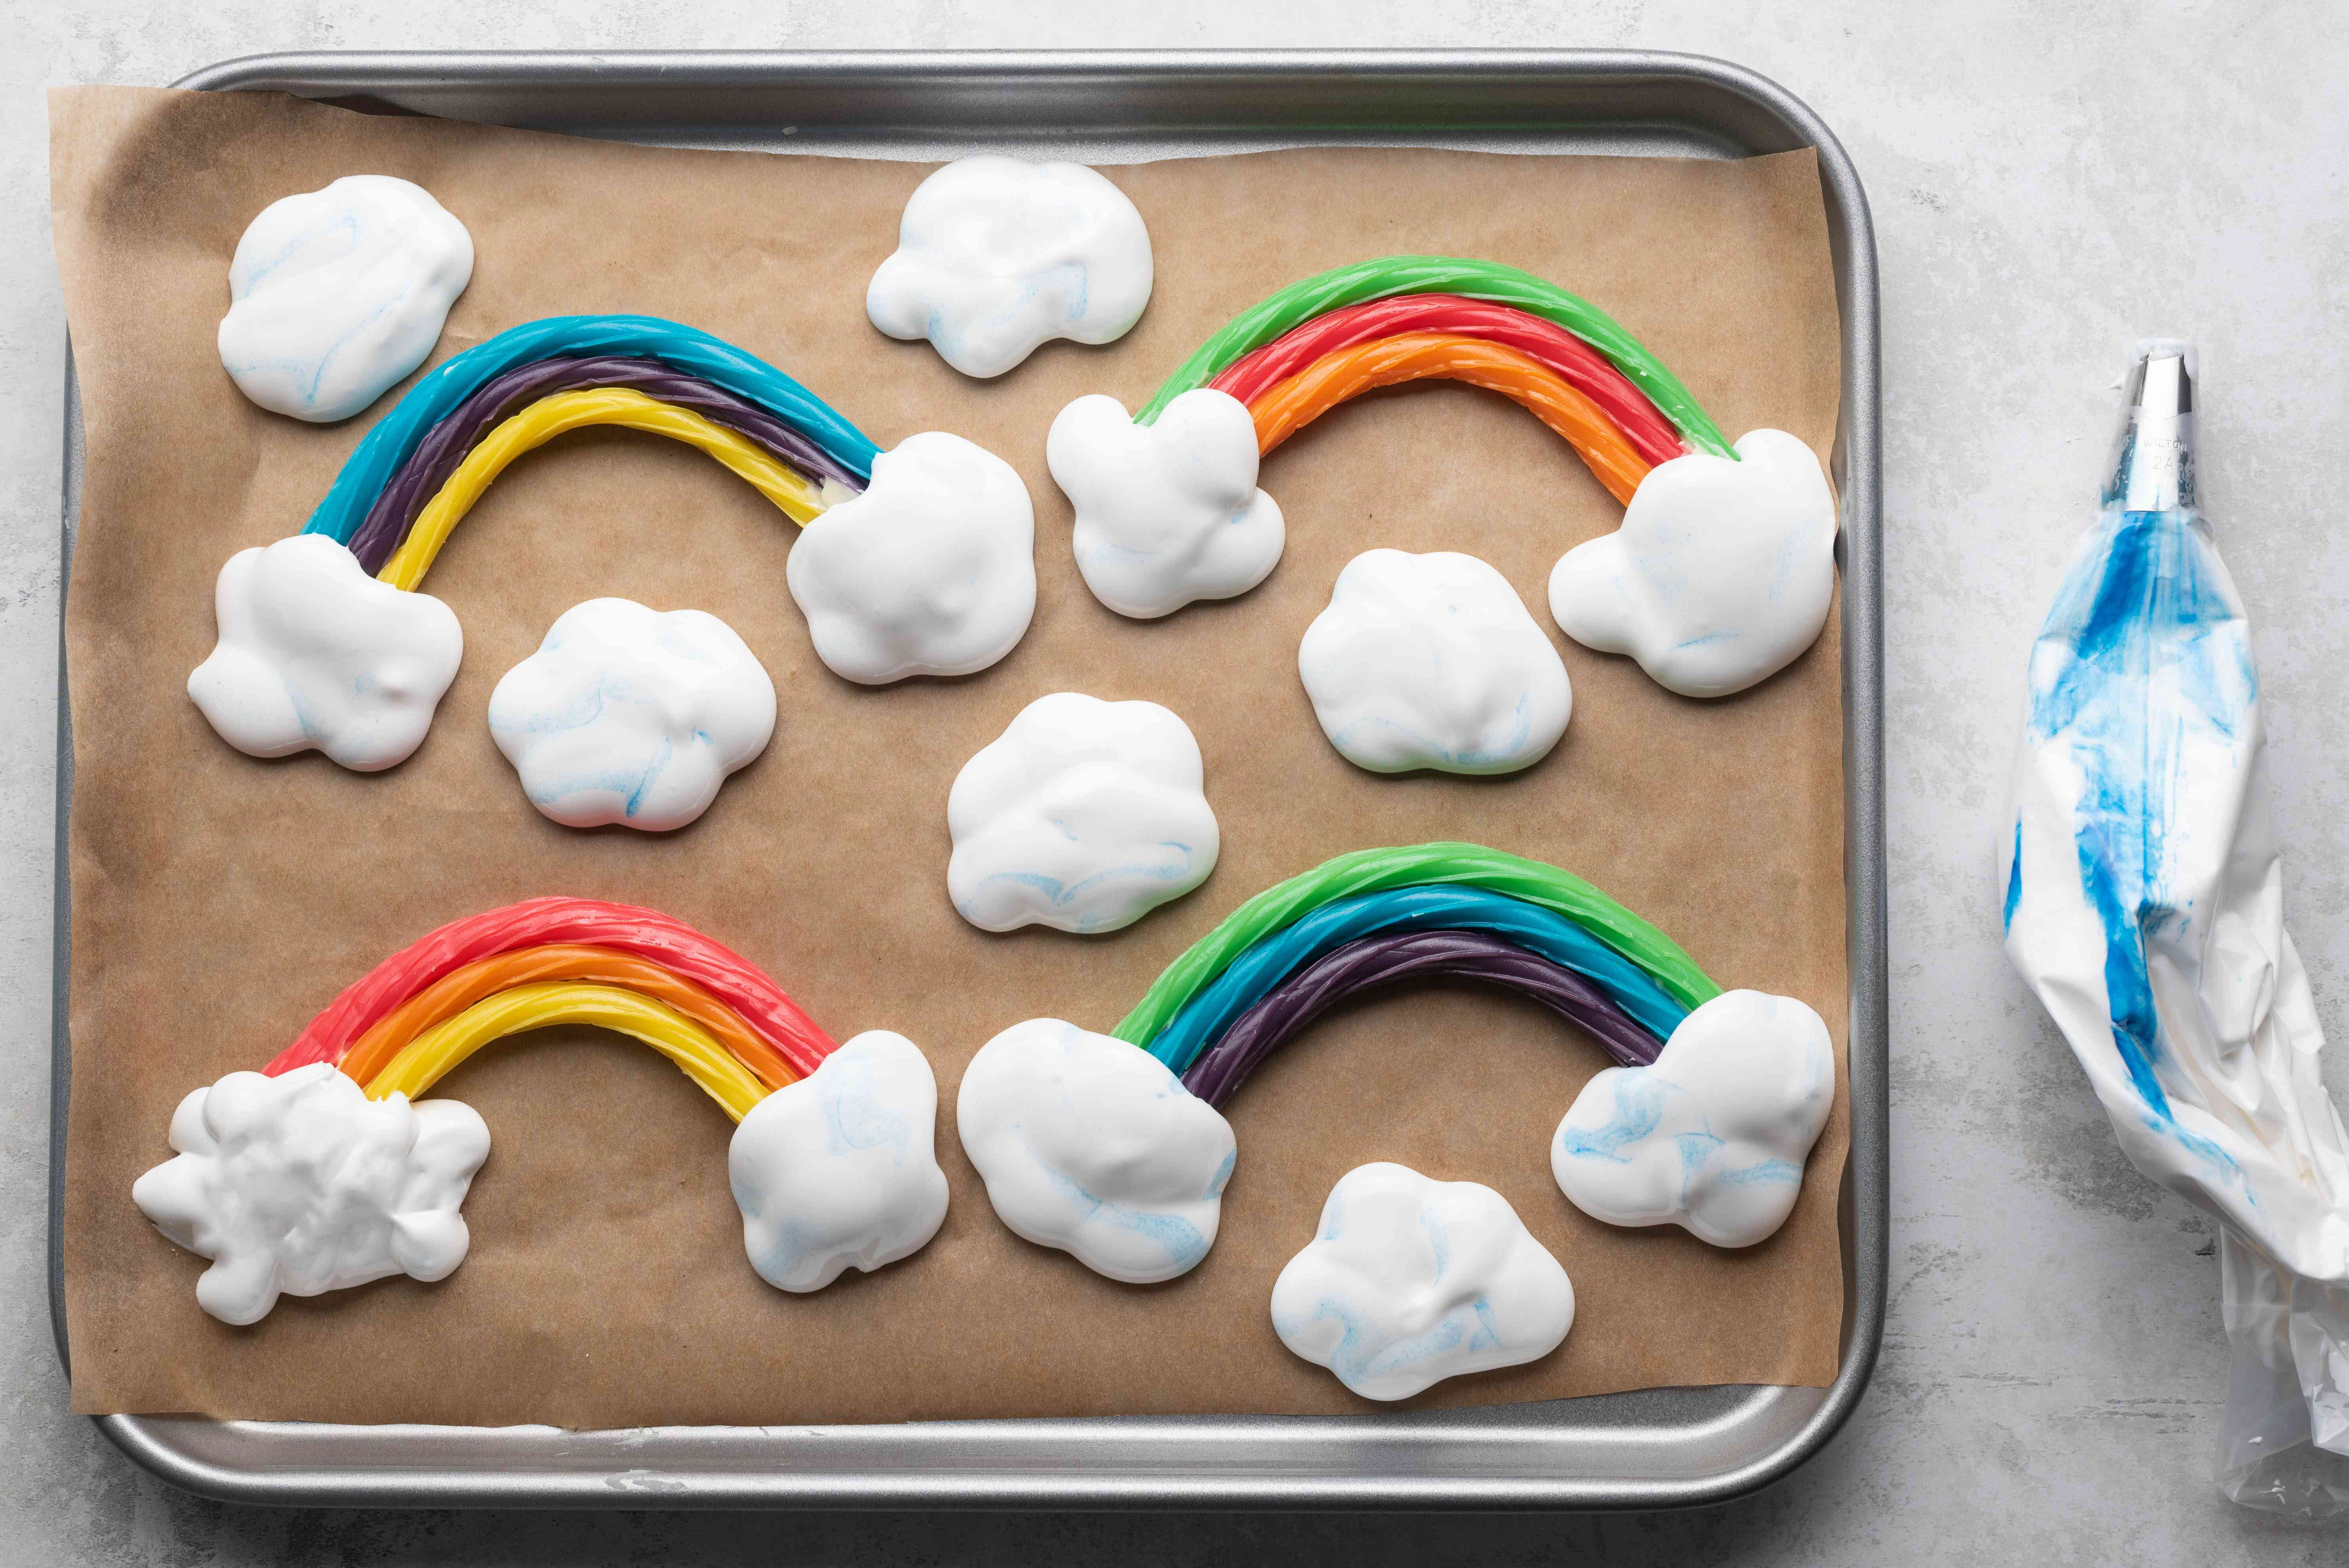 marshmallow clouds piped on the baking sheet along side the licorice rainbows